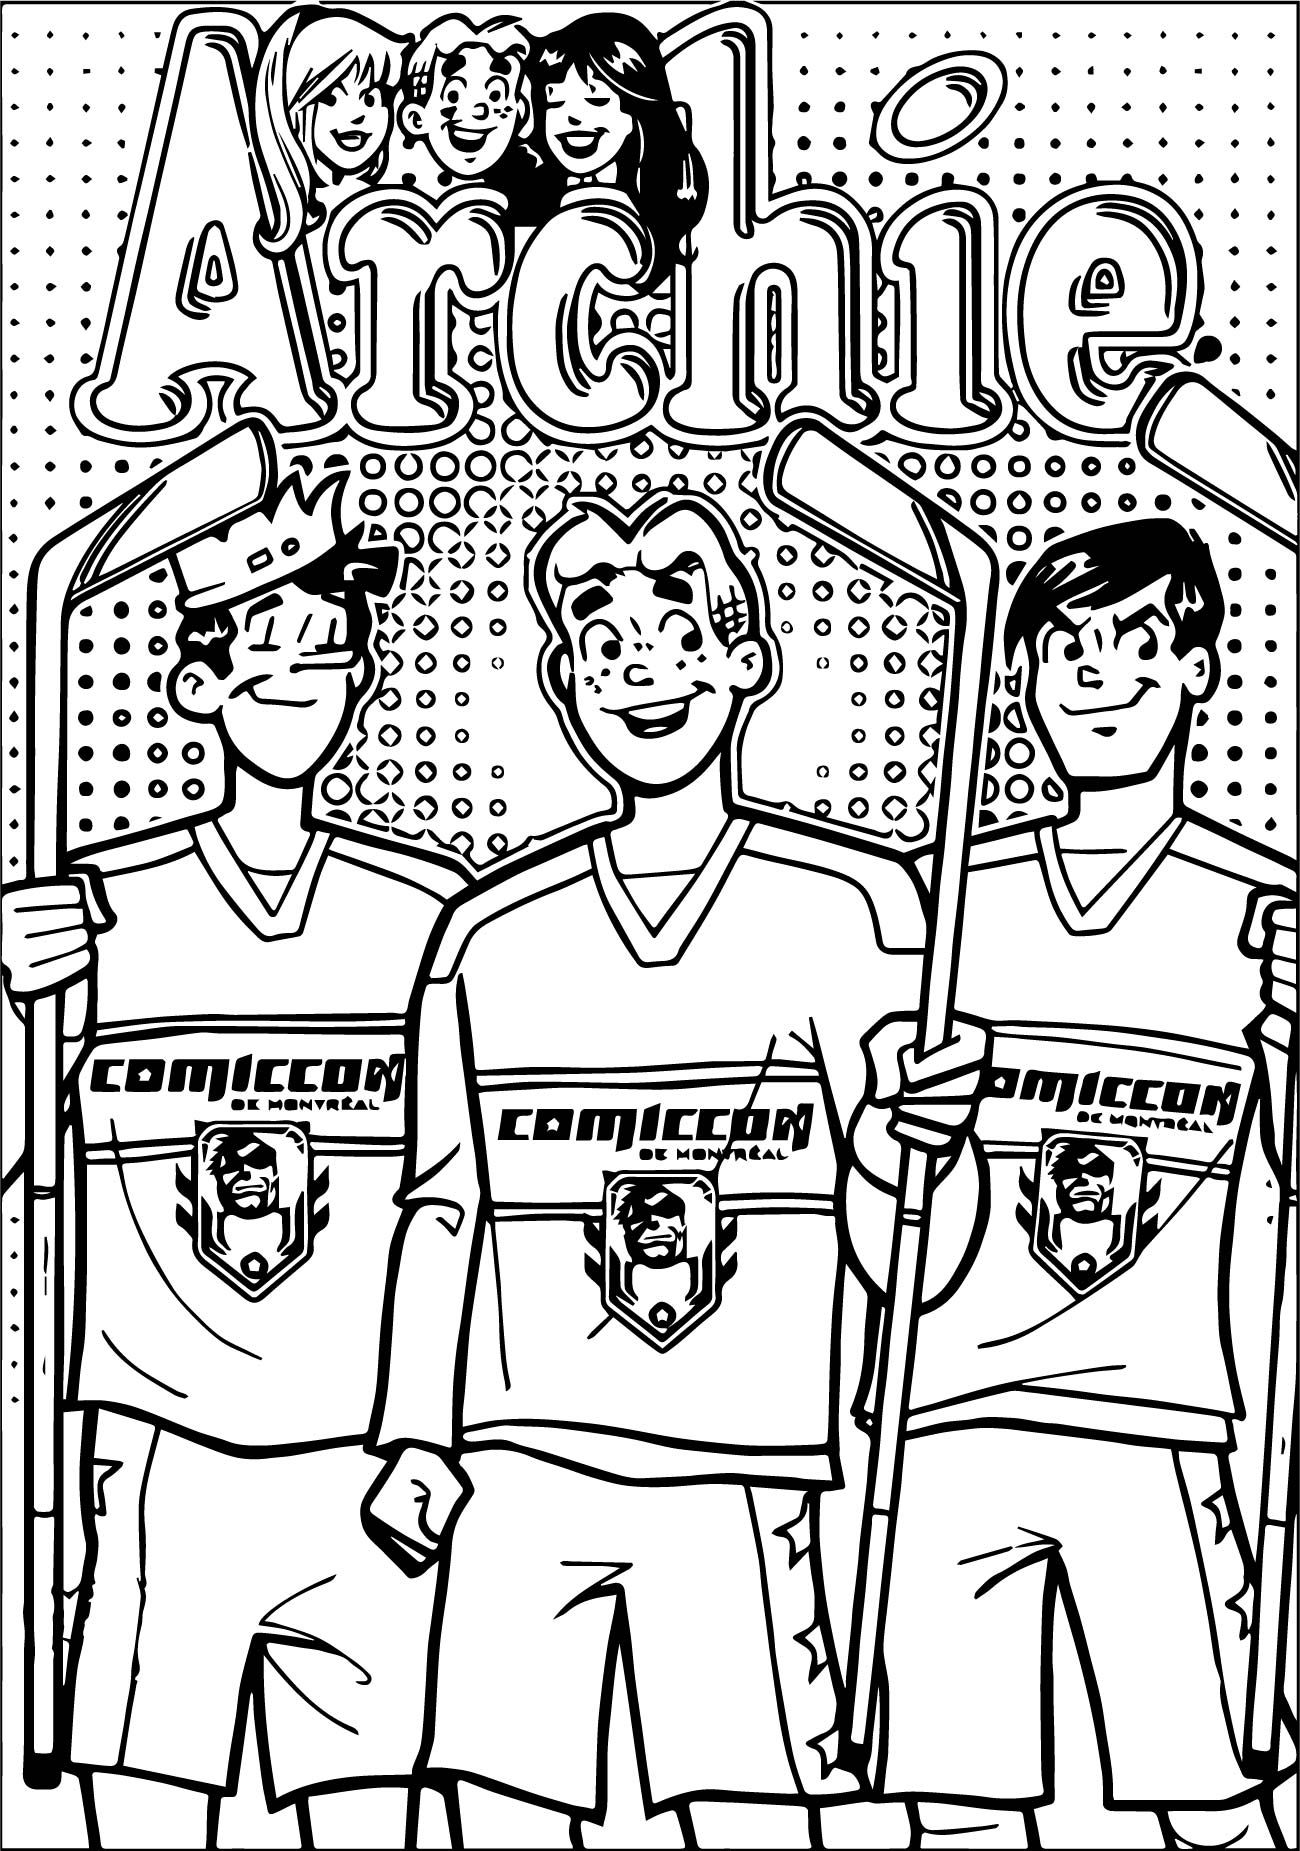 Cool Archie Comics Hockey Coloring Page Archie Comics Comics Coloring Pages